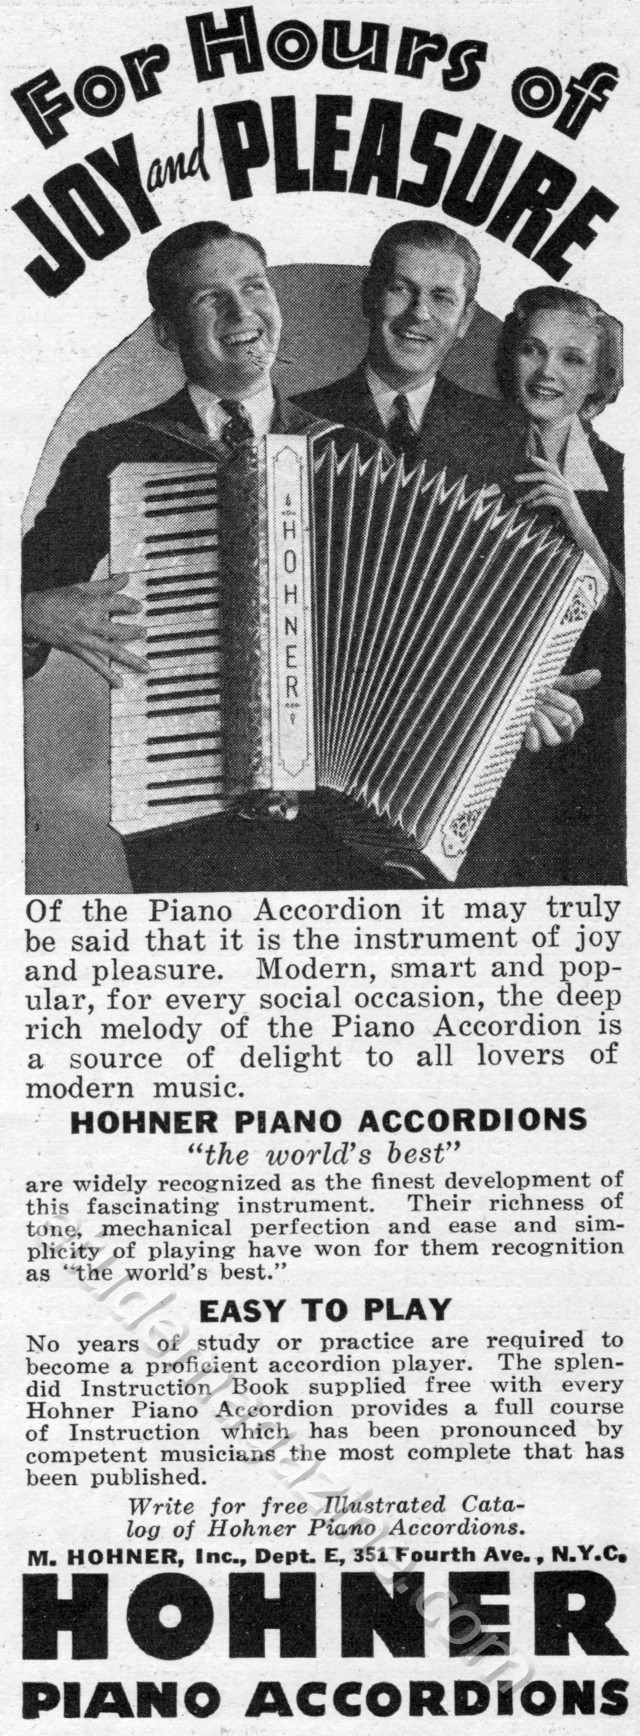 Hohner Piano Accordians